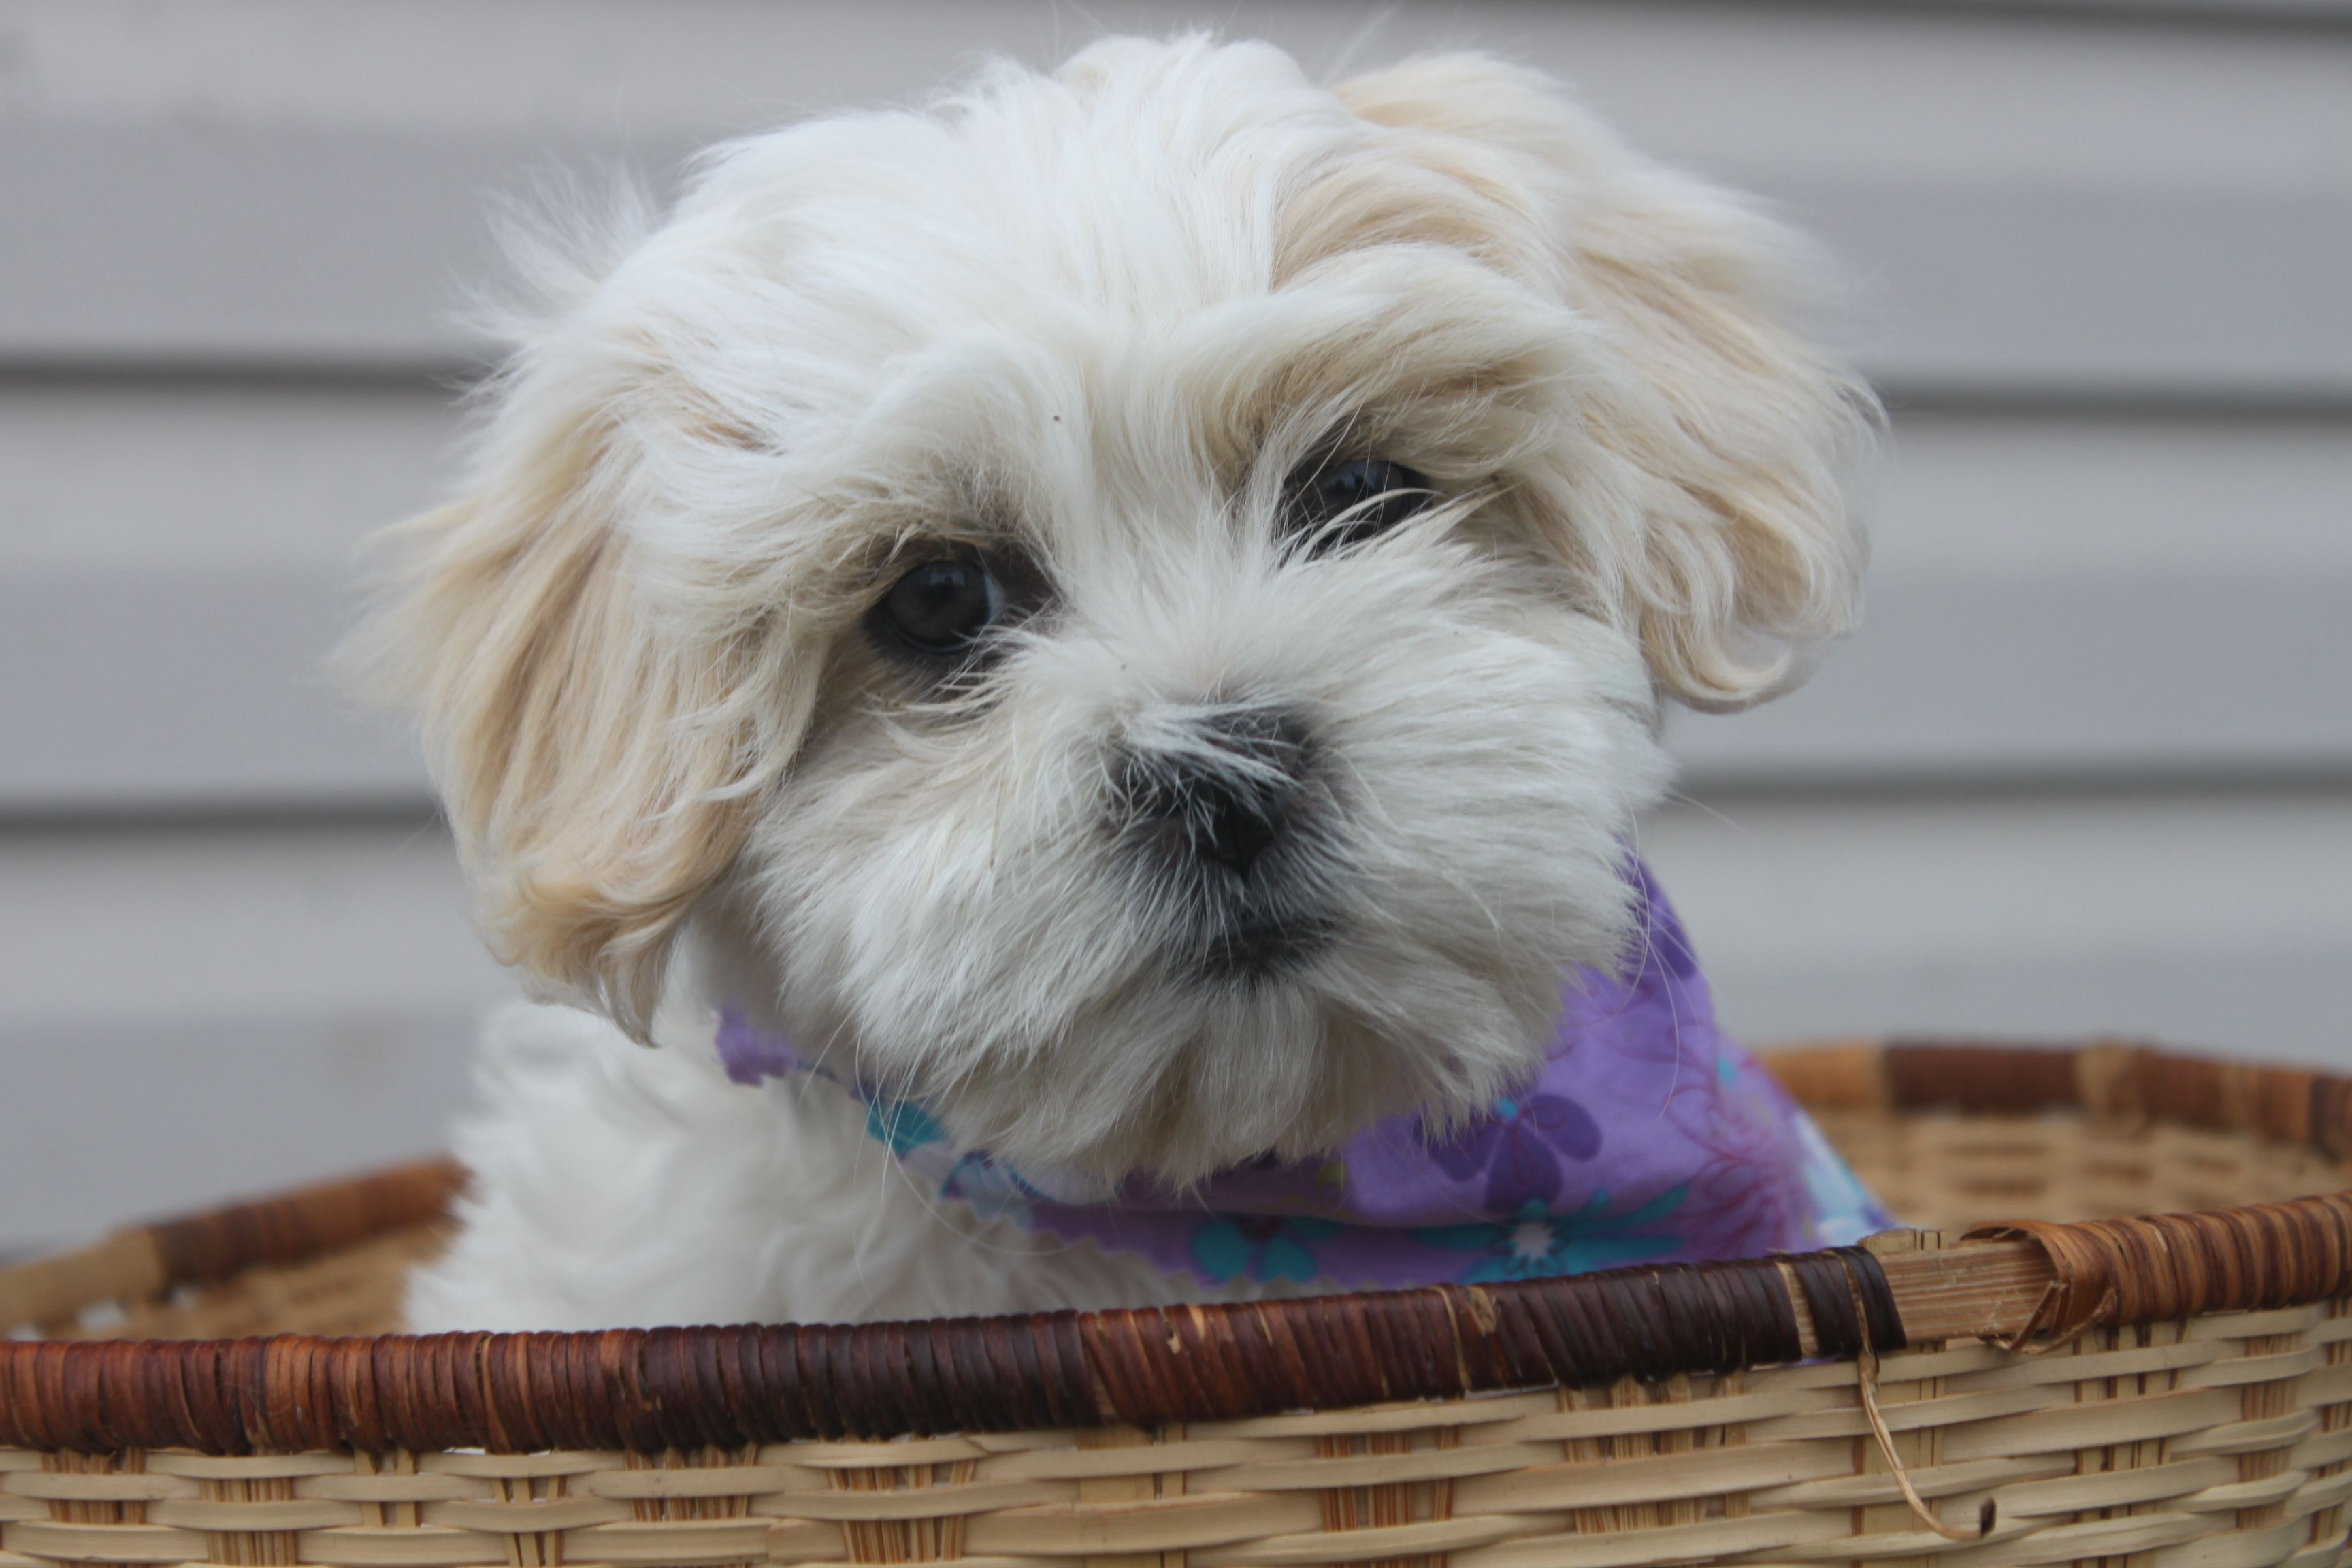 BichonShih tzu Puppies For Sale In Shippensburg